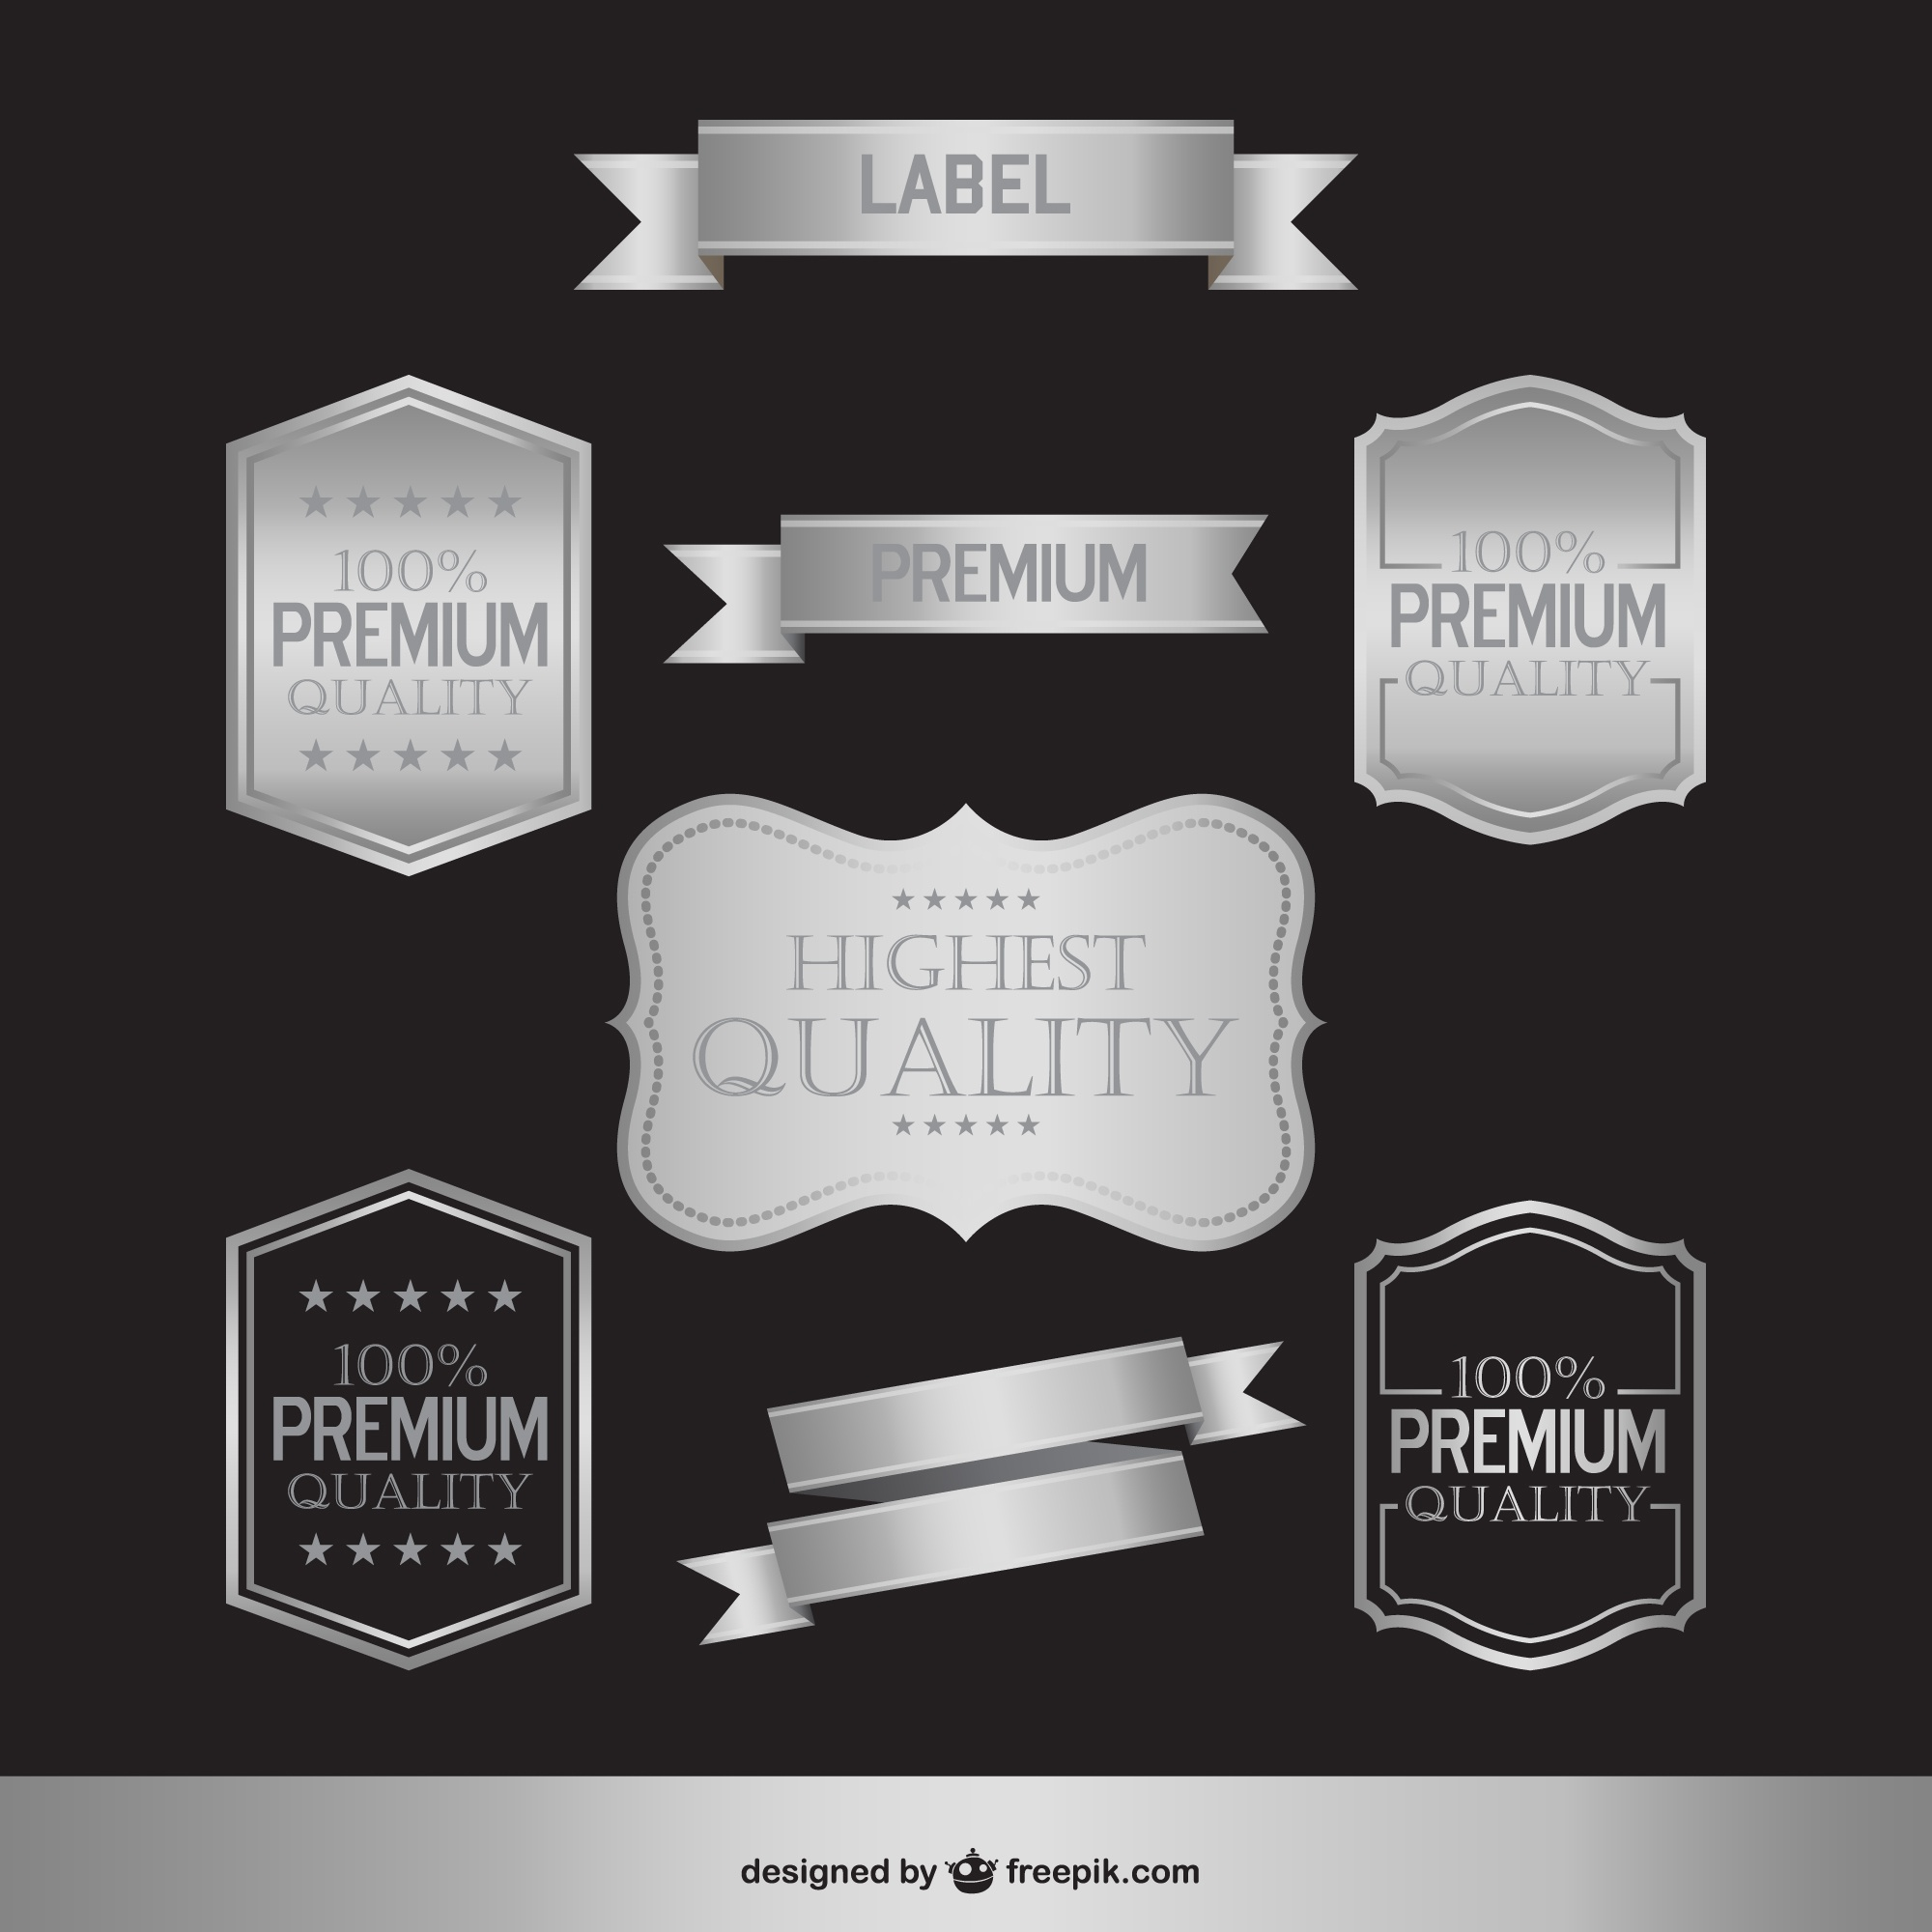 Silver shiny labels and badges